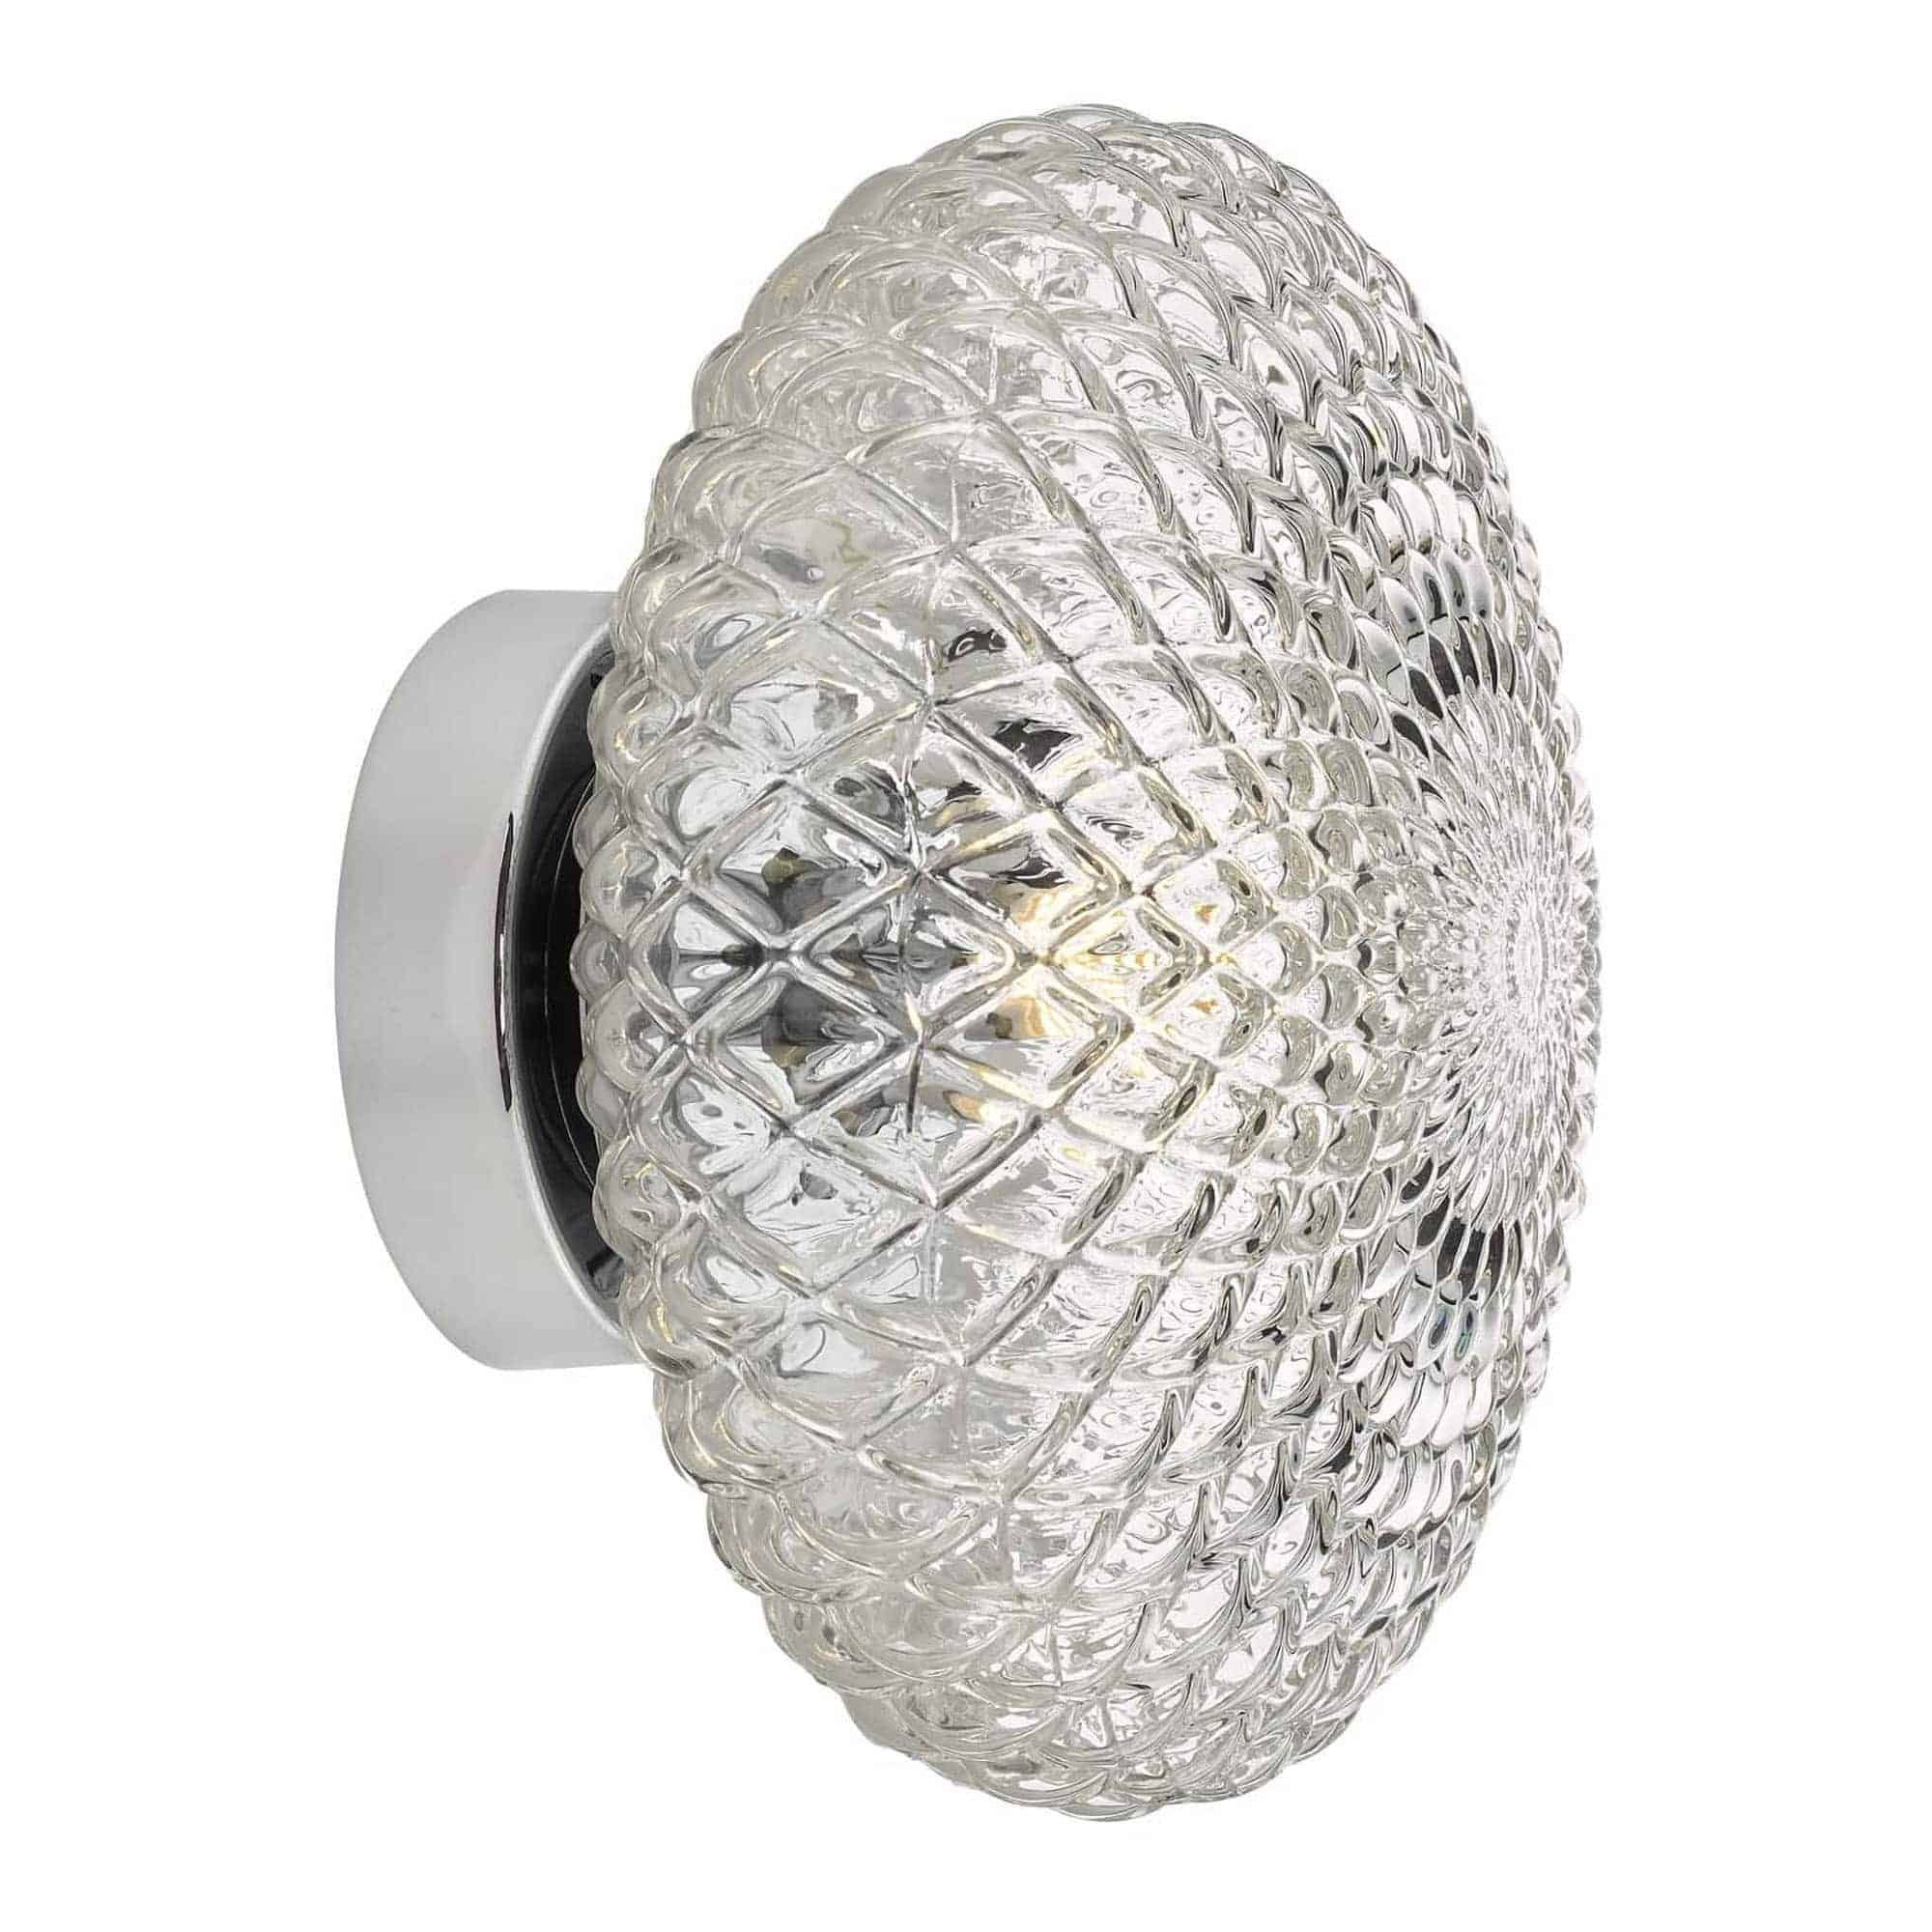 Dar BIB0708 Bibiana 1 Light Wall Light Polished Chrome with Clear Shade Small